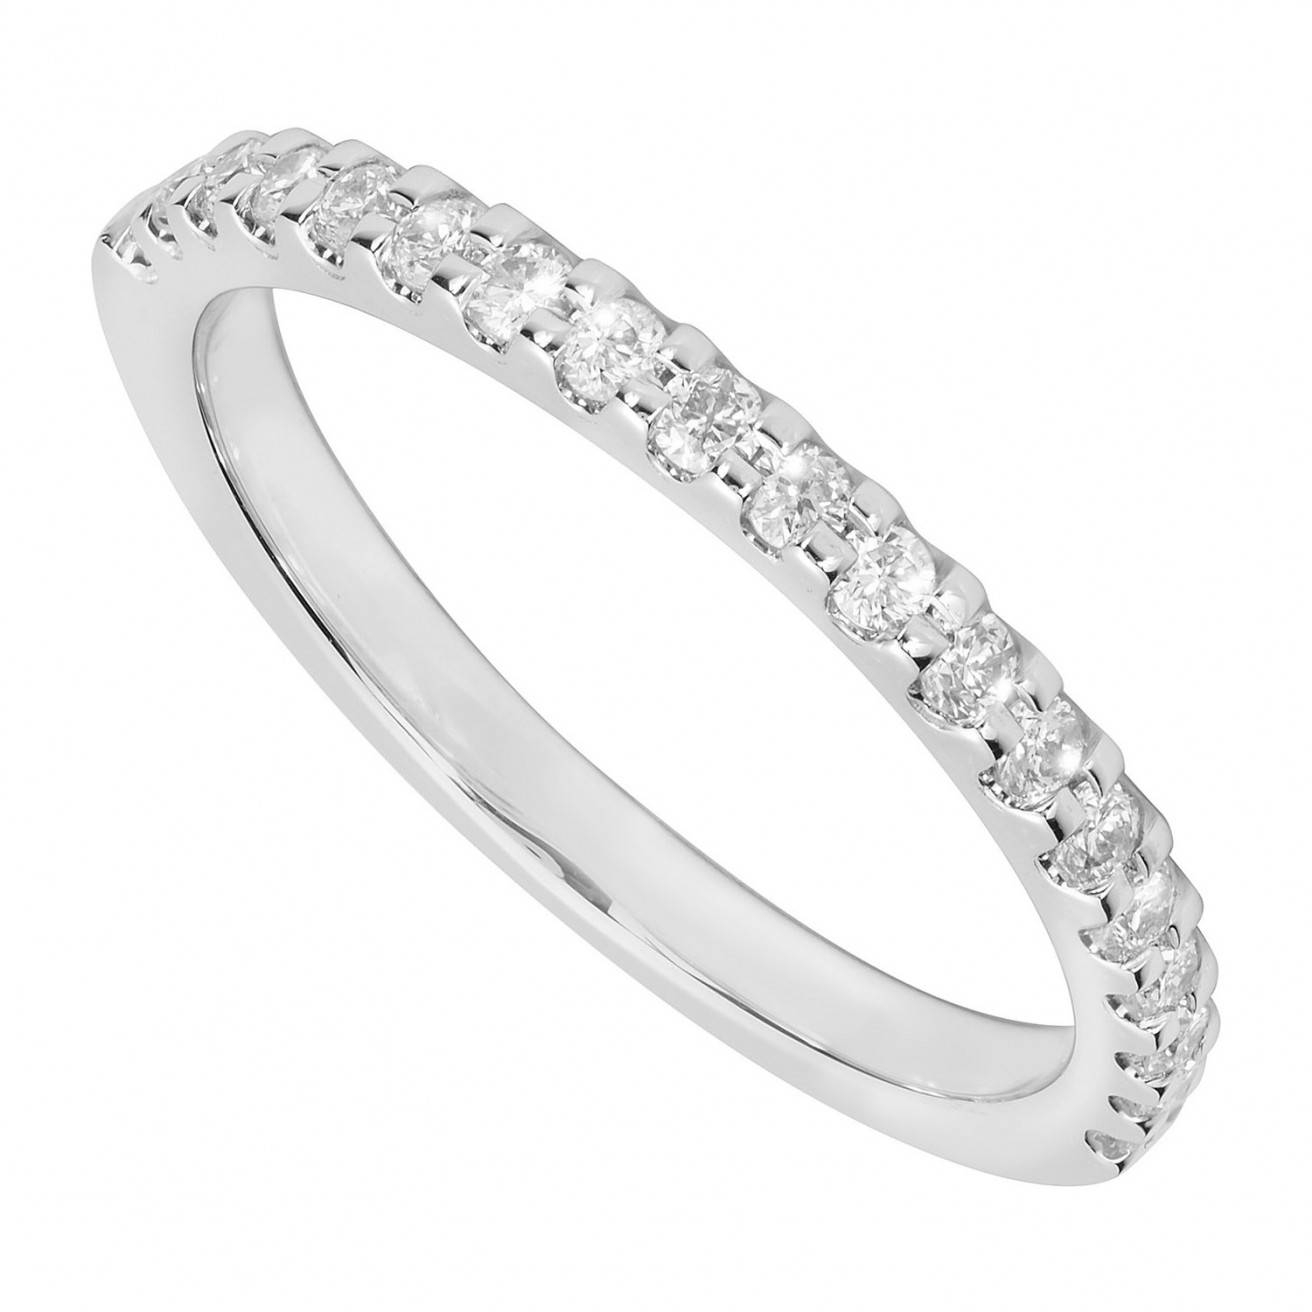 Buy Platinum Wedding Bands Online – Fraser Hart With Regard To Platinum Diamond Wedding Rings Sets (View 7 of 15)